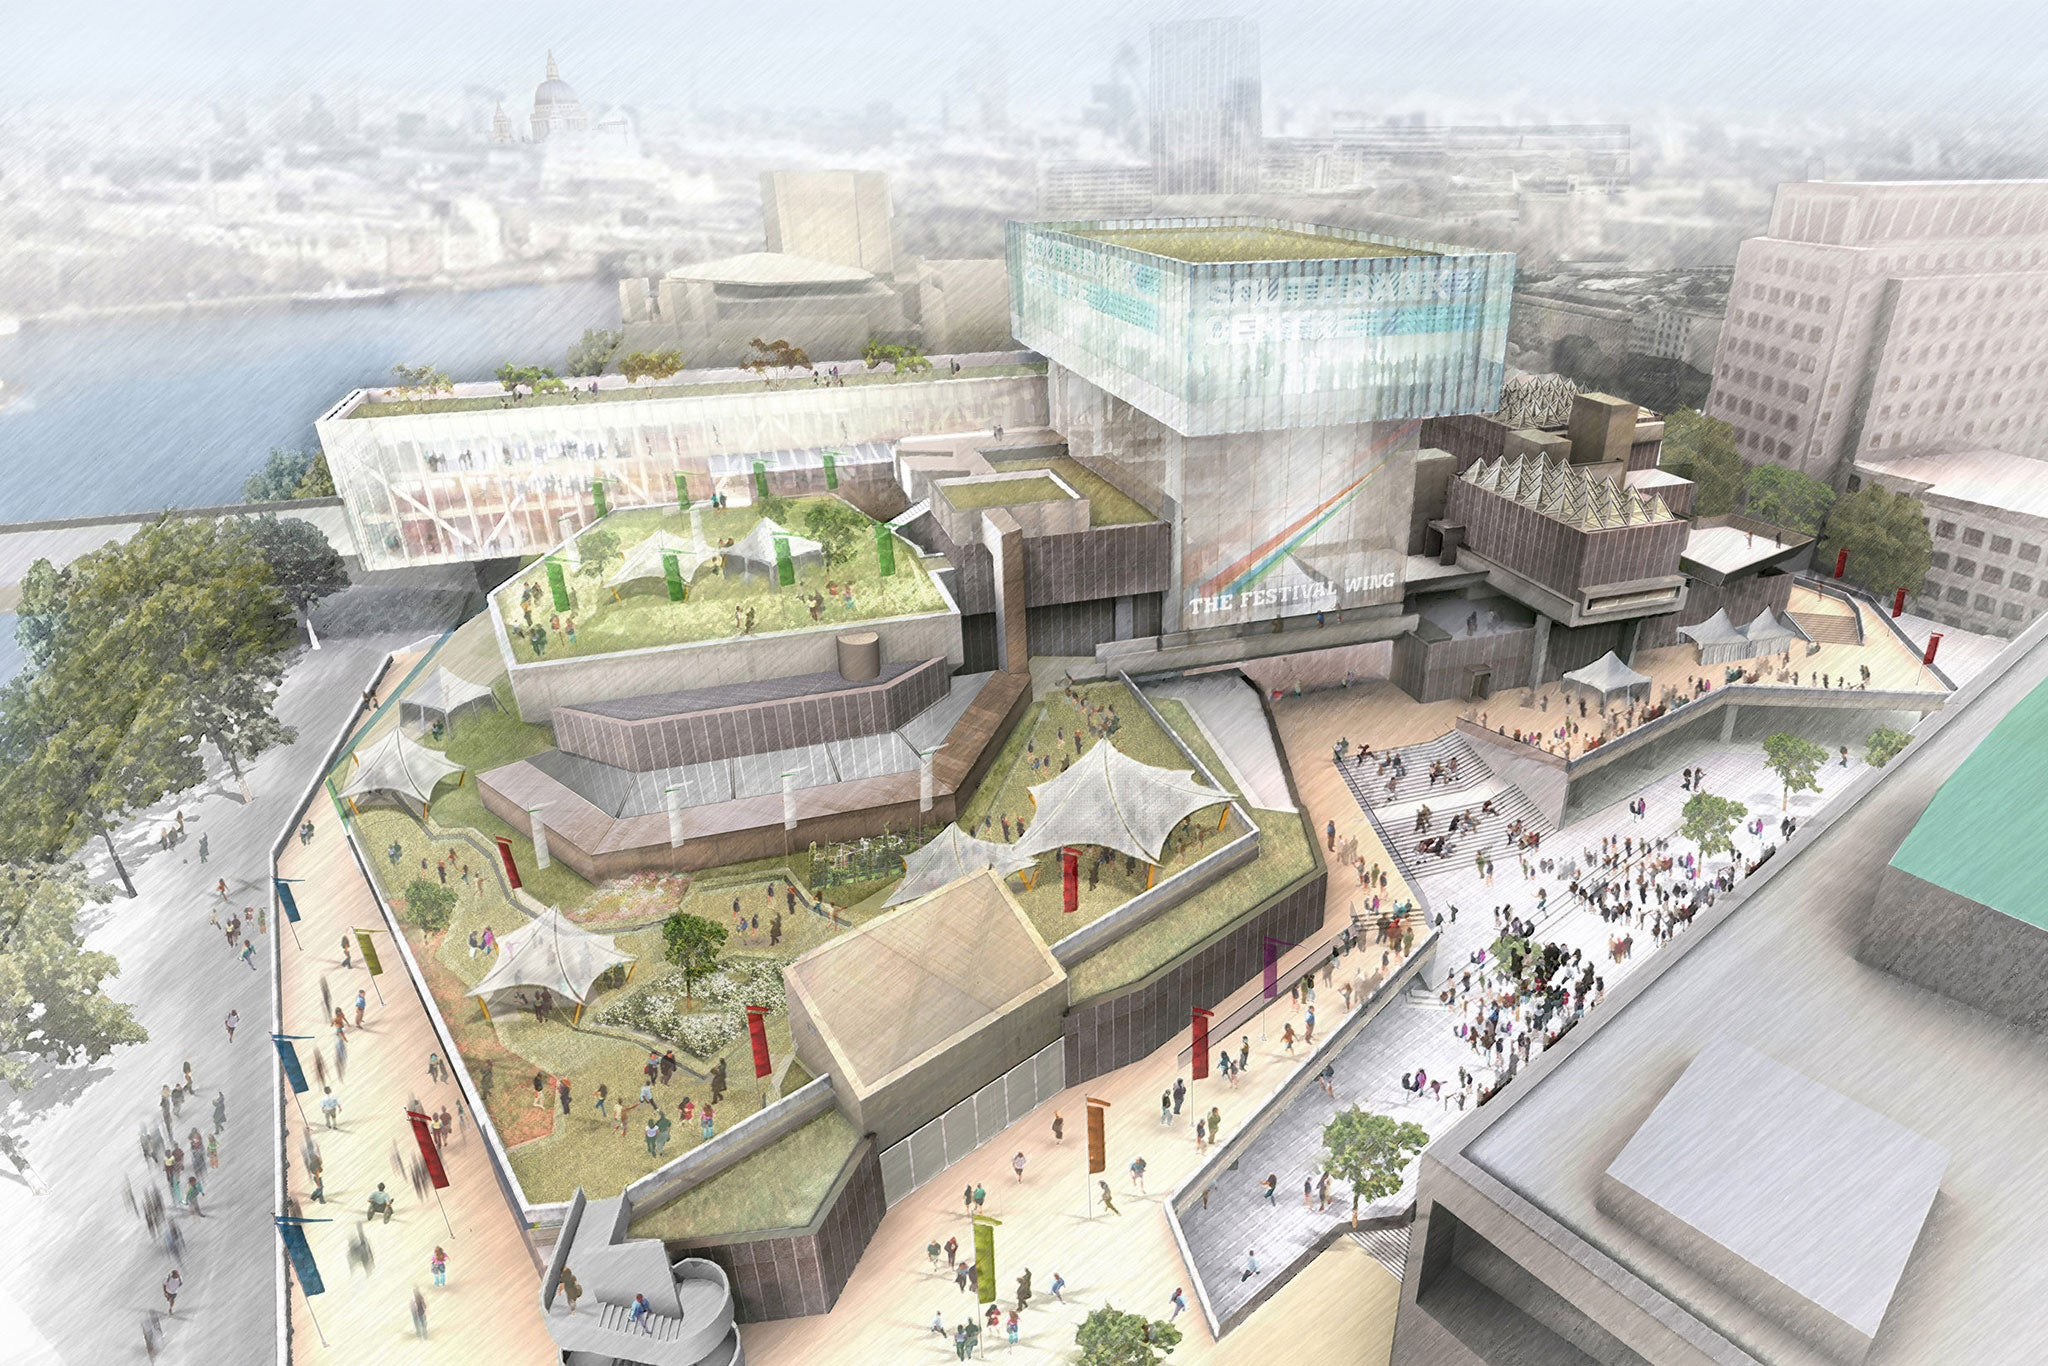 Home Ideas Centre Southbank: £100 Million Revamp Of Southbank Centre Hailed As 'biggest